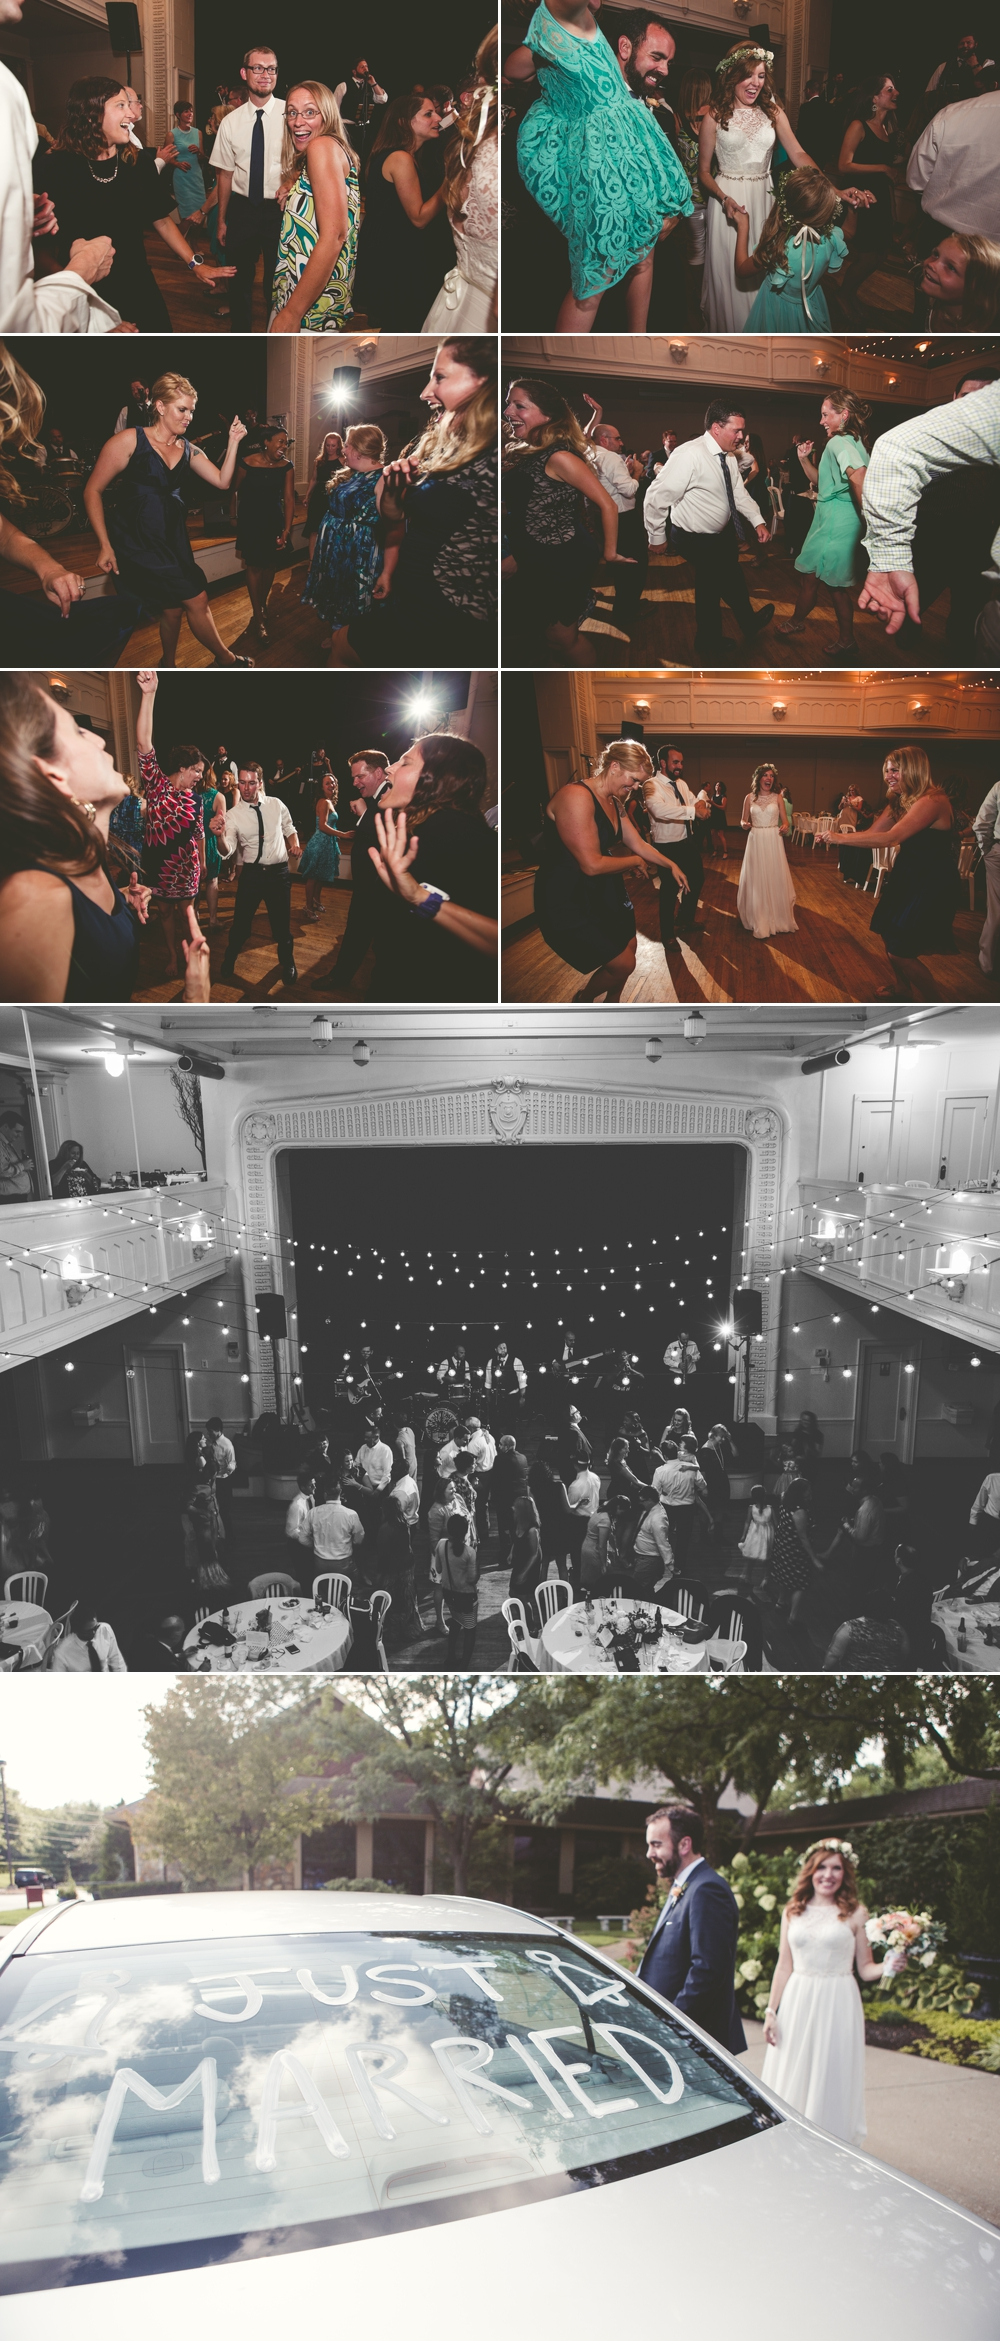 jason_domingues_photography_best_kansas_city_wedding_photographer_kc_weddings_4